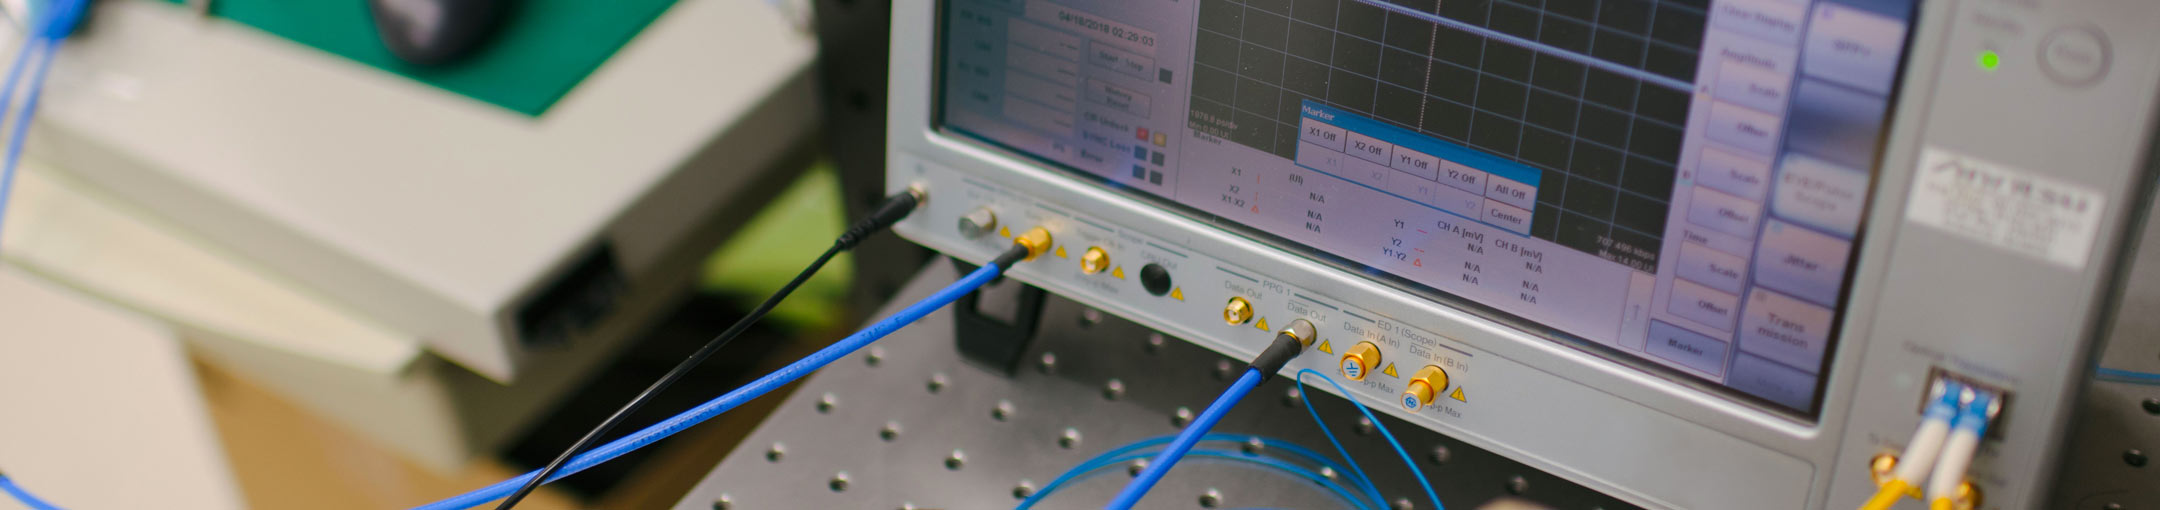 Close-up of wires going into a machine that appears to be some sort of voltage or audio monitor